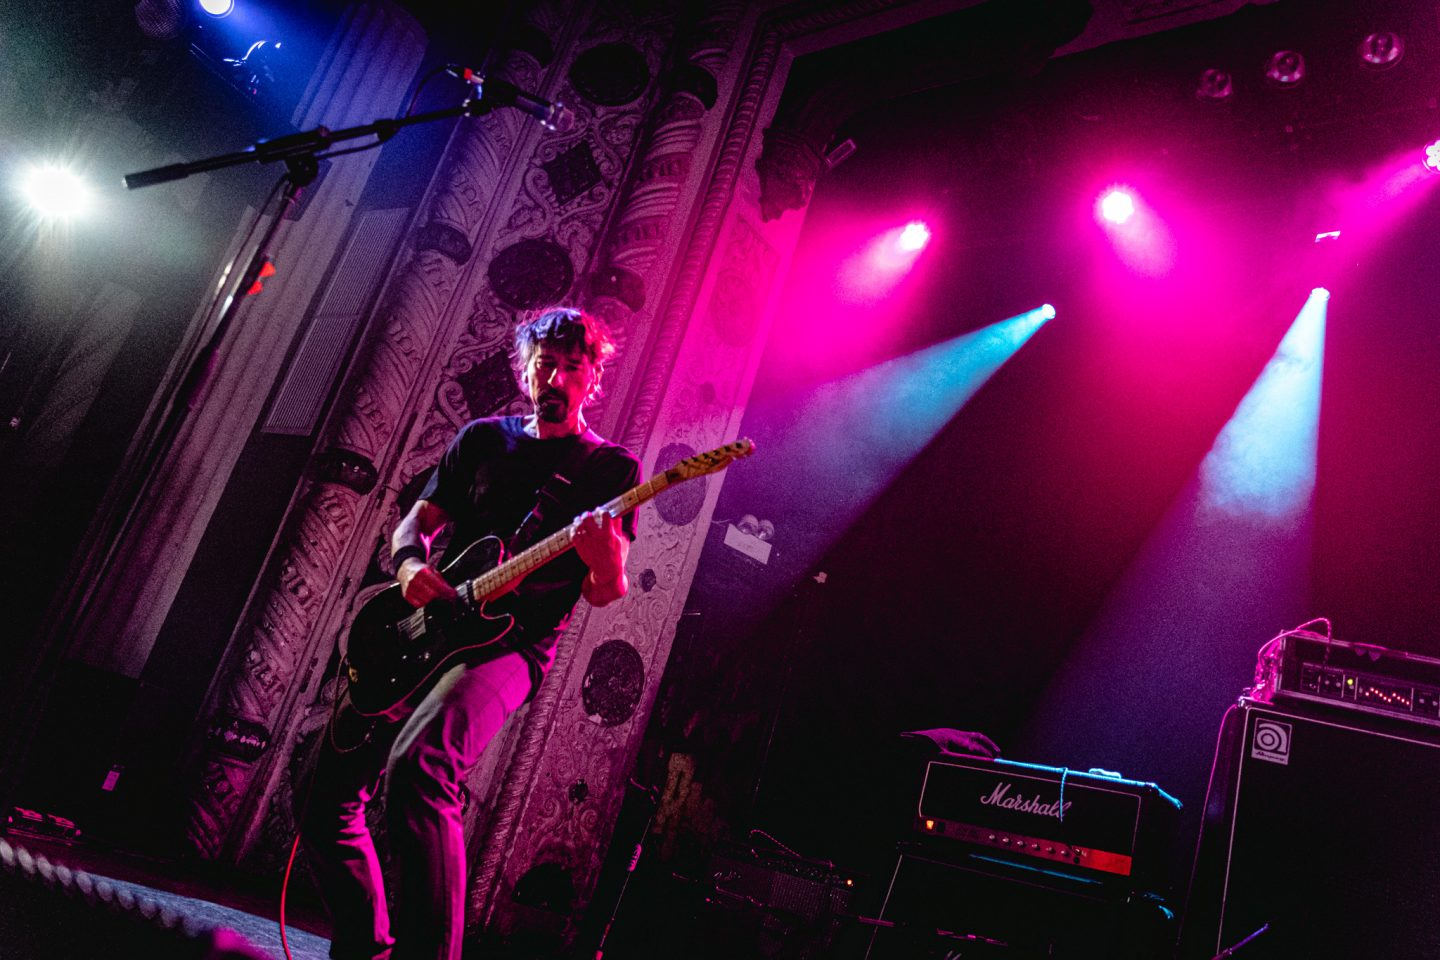 Jawbox at Metro by Thomas Bock Photography